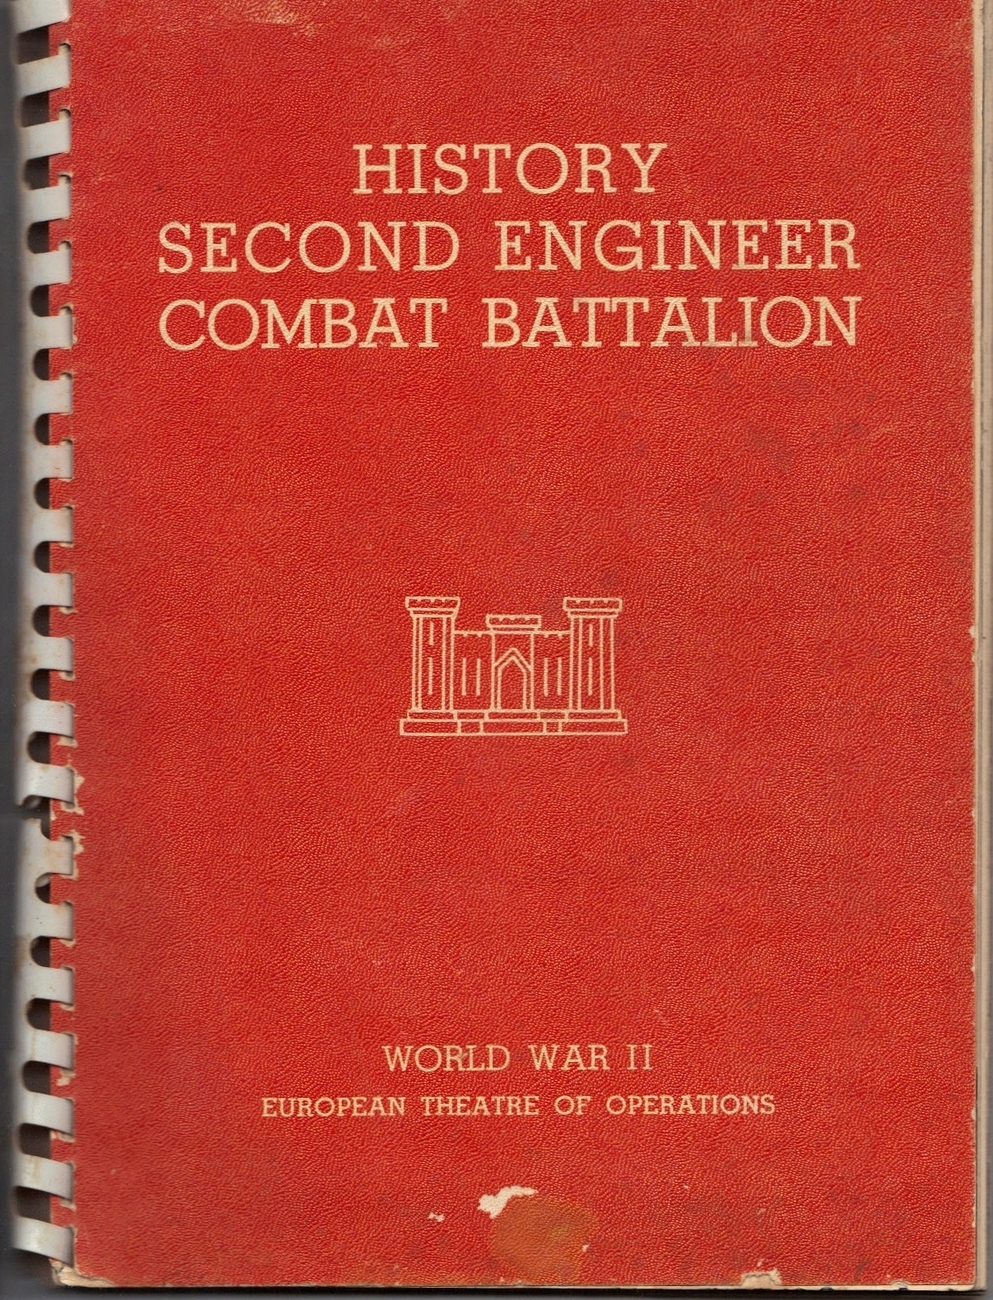 Vintage Rare Historical Military Booklet. WW II Hist. 2nd Engineer Combat Battal